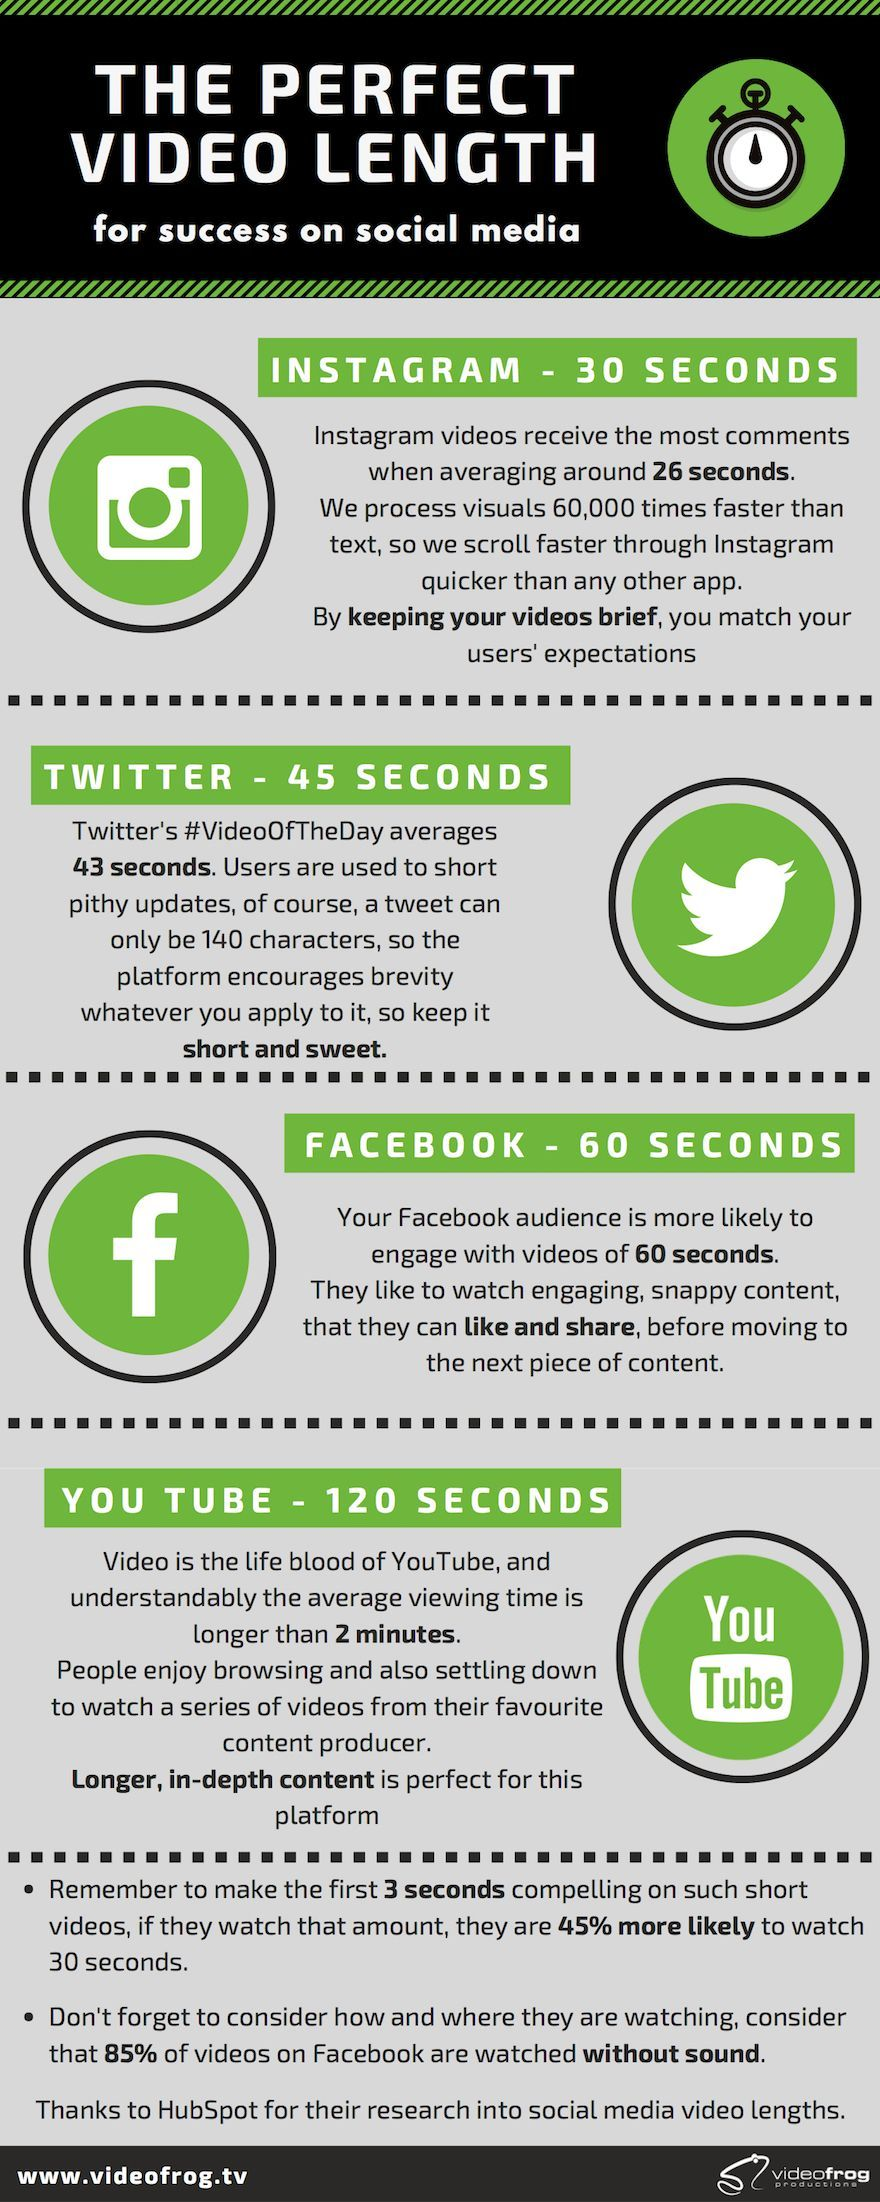 Creating the perfect video length for social media